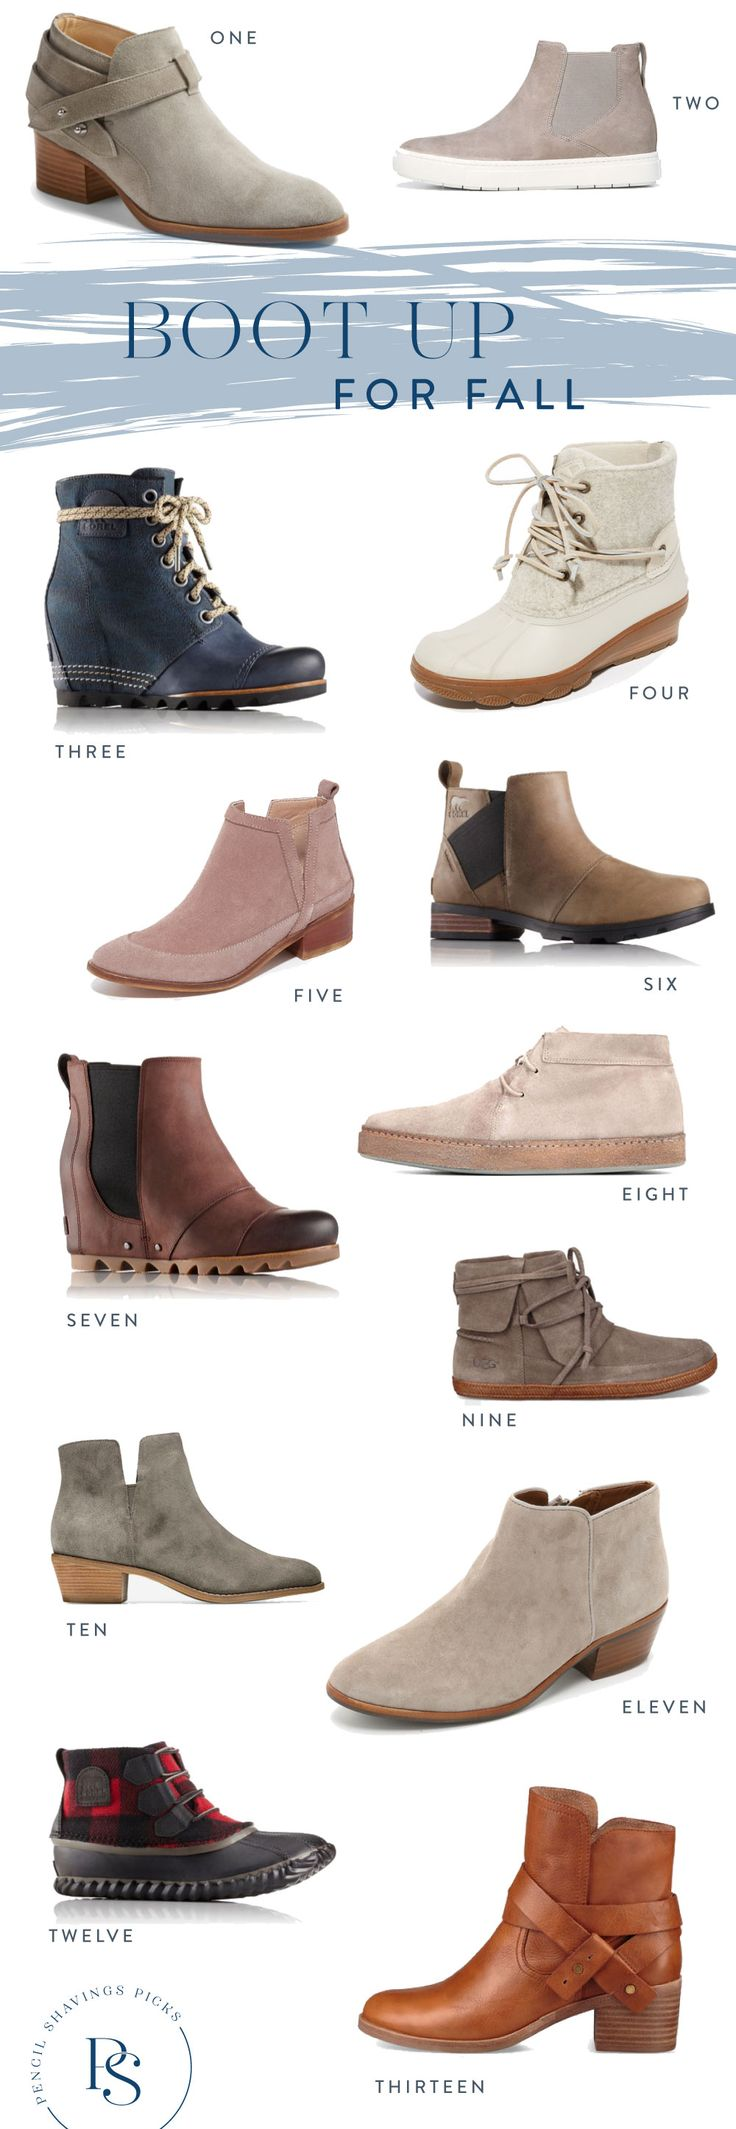 Boots! Fall weather! Scarves!  It's all on the horizon. I'm due for a boot upgrade this fall and I've got my virtual shopping carts full hither and yon.  And there are so. many. good. options and at every price point. I think I'll grab those Gap ones ASAP